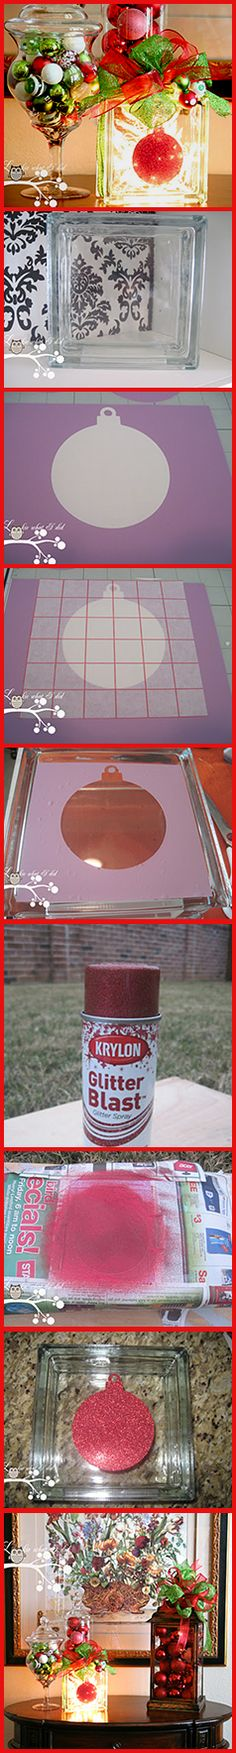 Christmas Glass Block using Krylon Glitter Blast: #diy #christmas #holiday #glitter #glassblock #lighting #tutorial #reuse #recycle http://www.lookiewhatidid.blogspot.com/2011/12/glass-block-using-krylon-glitter-blast.html                                                                                                                                                                                 More